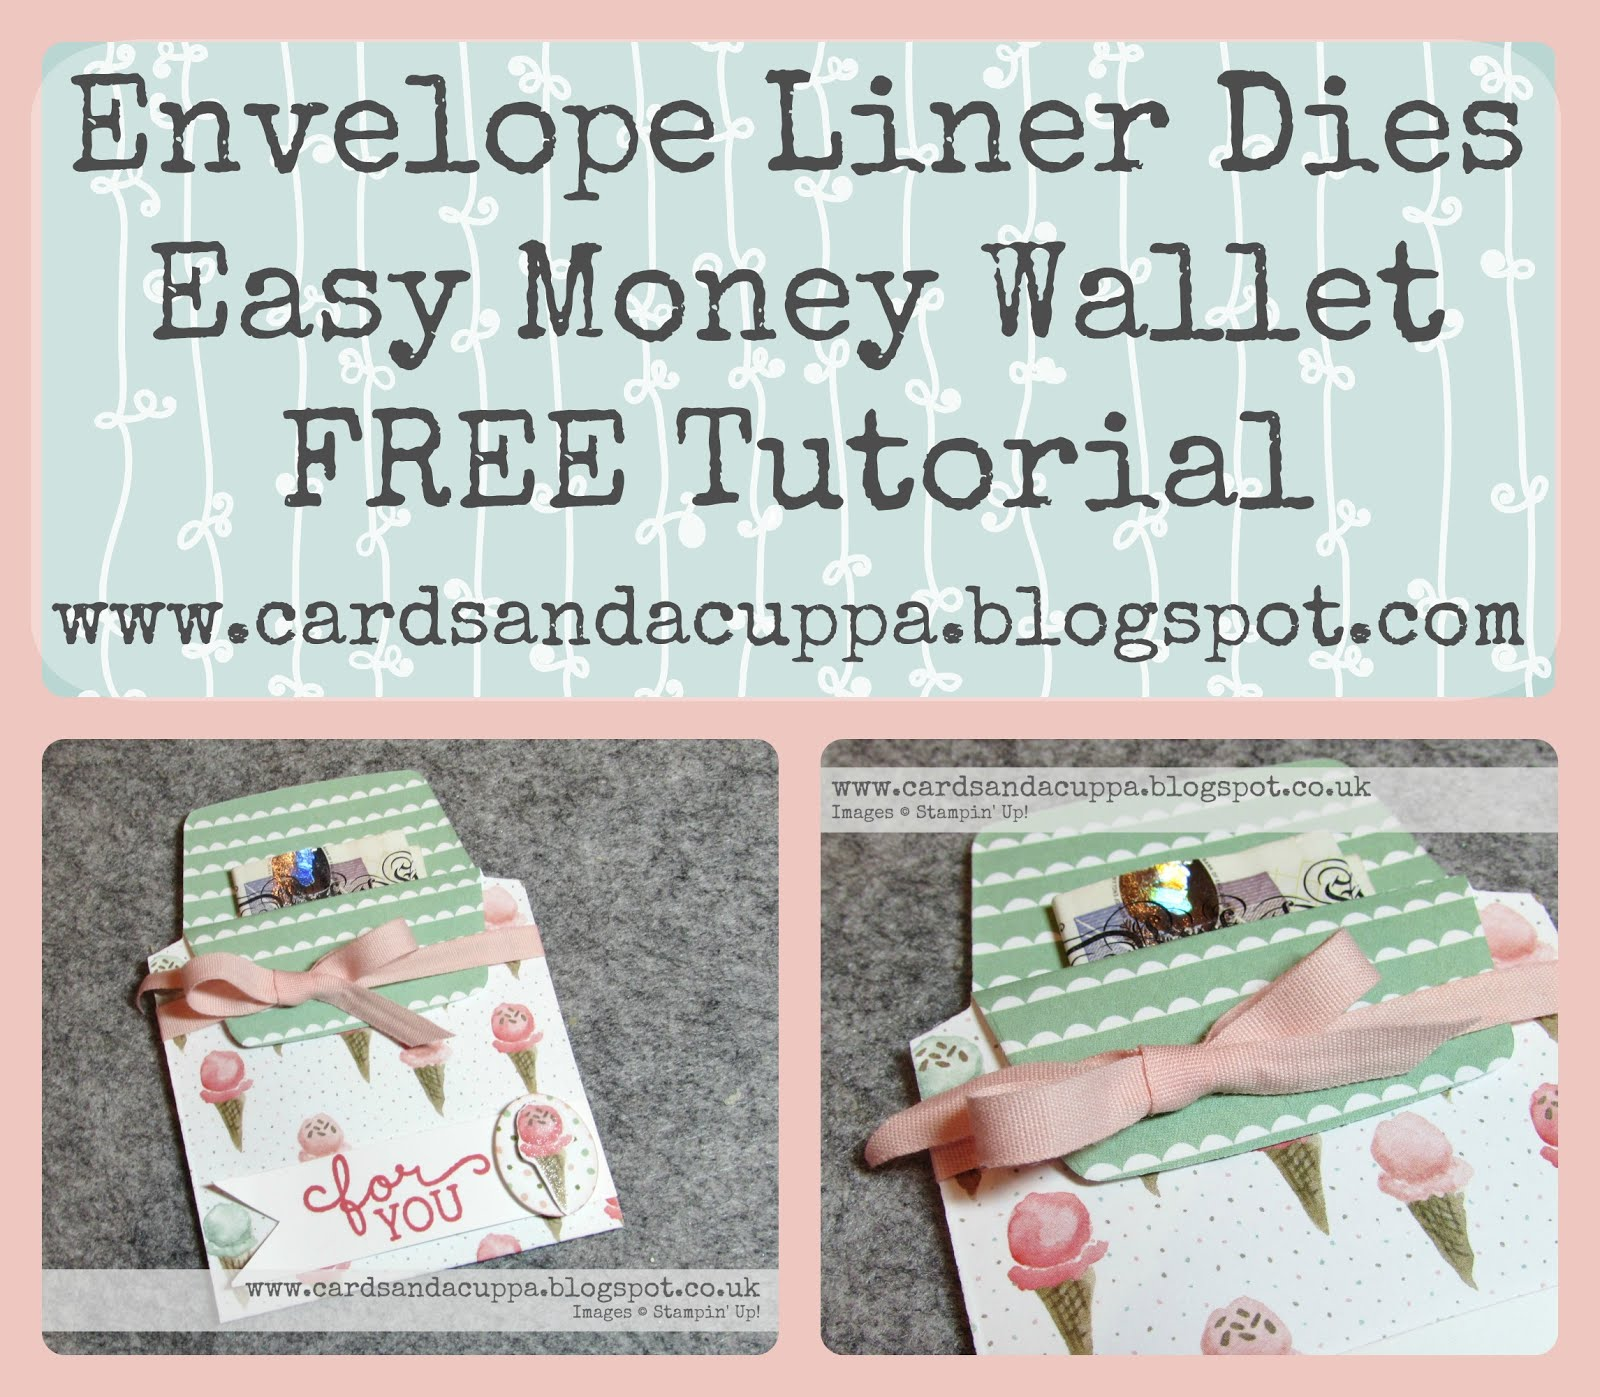 Never used your Envelope Liner Dies? Here's a quick tutorial to get them moving!